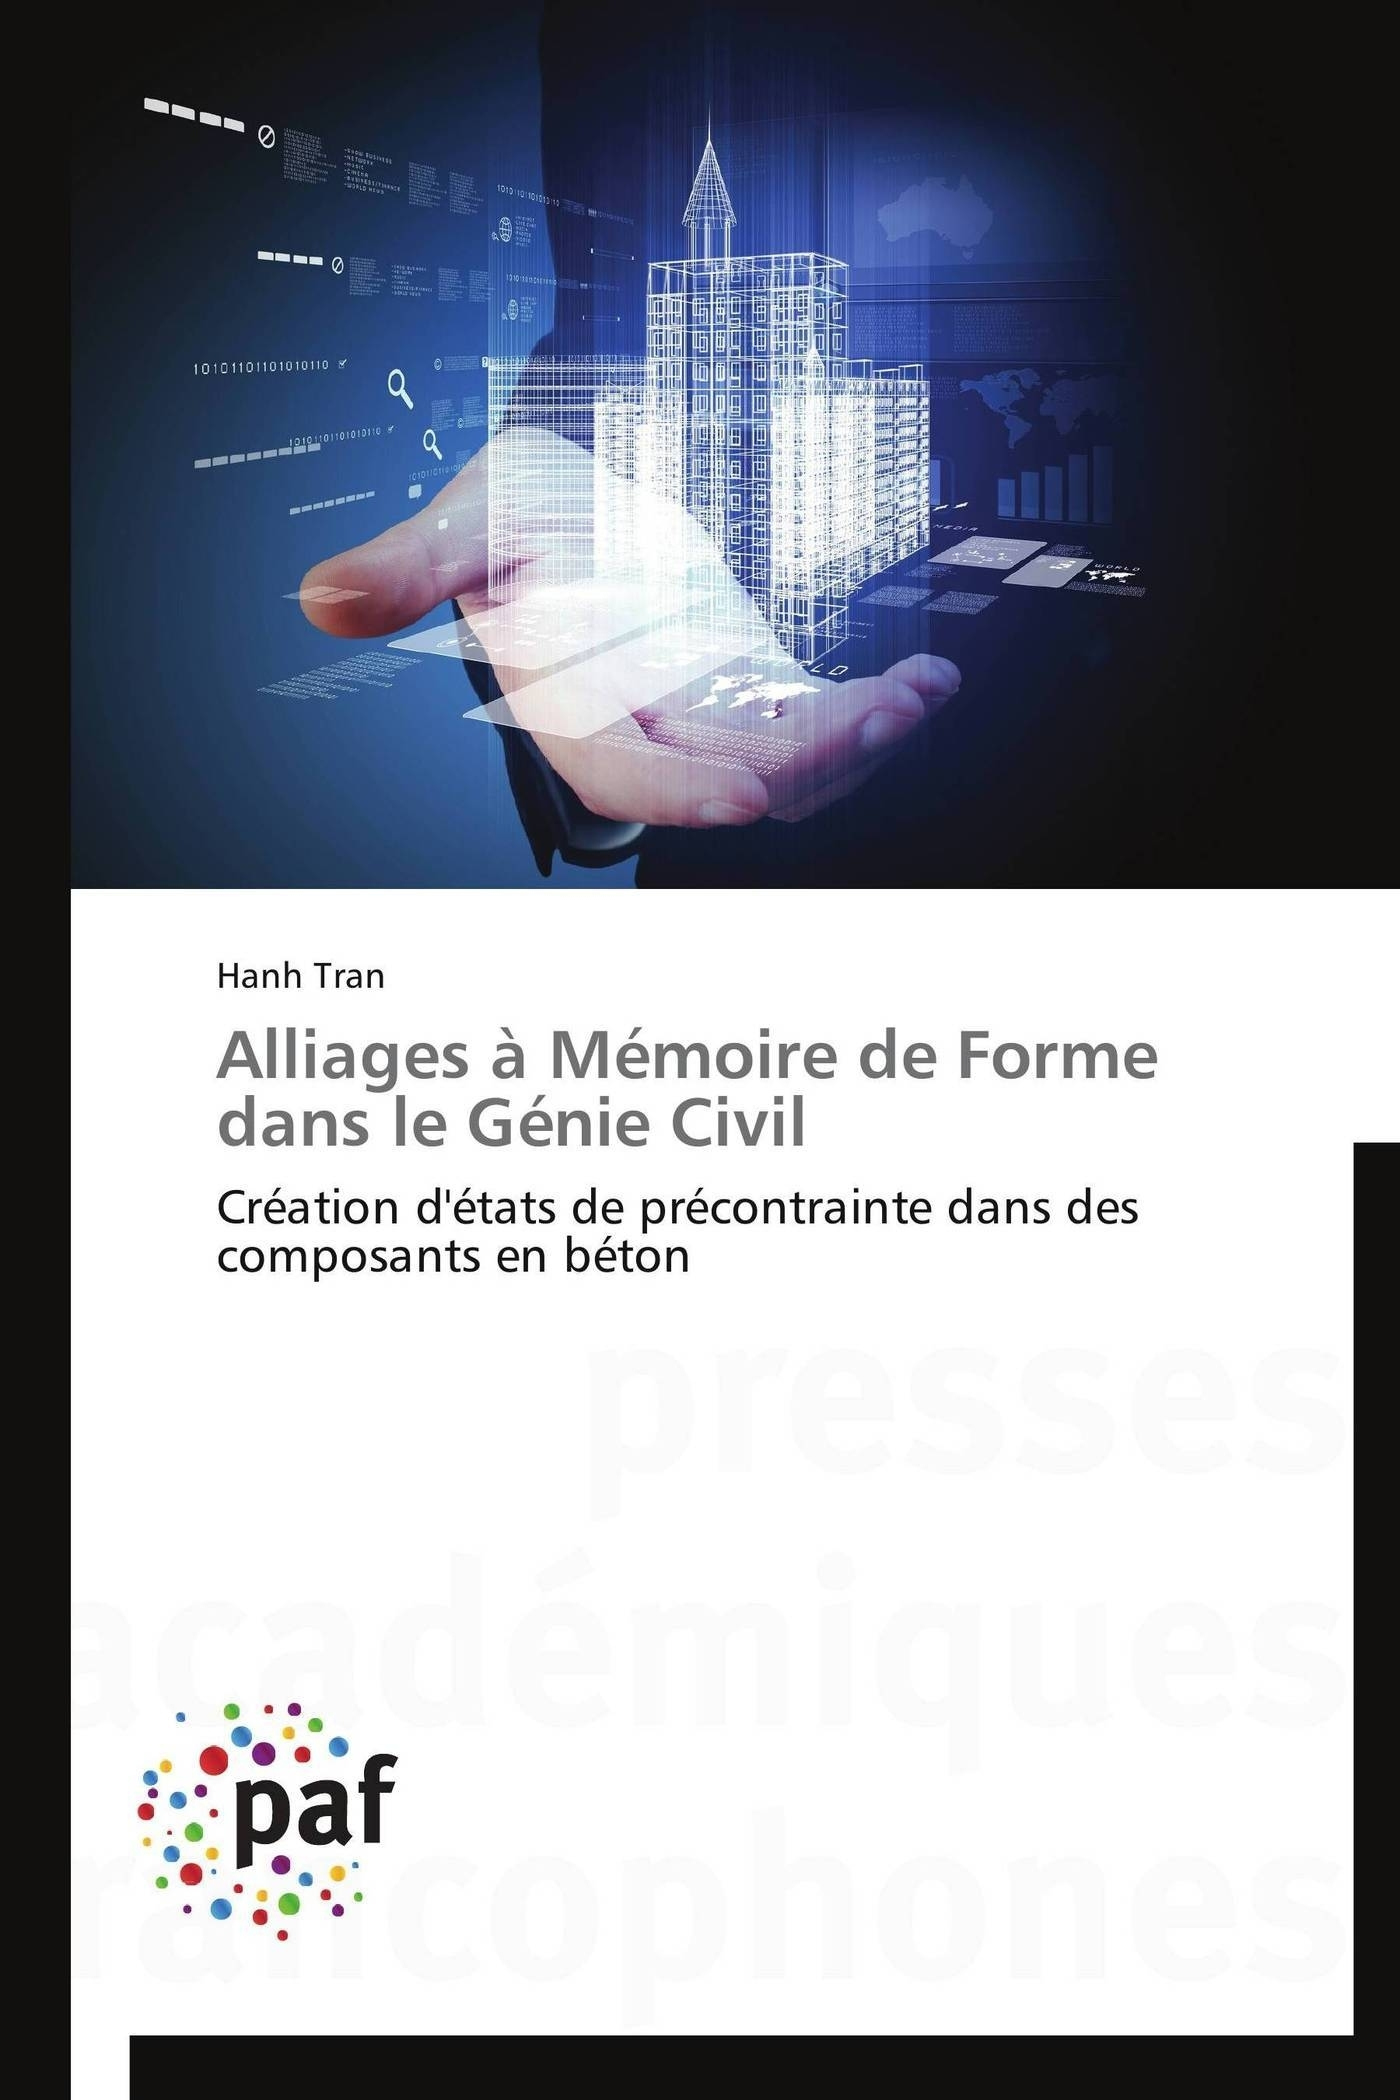 ALLIAGES A MEMOIRE DE FORME DANS LE GENIE CIVIL